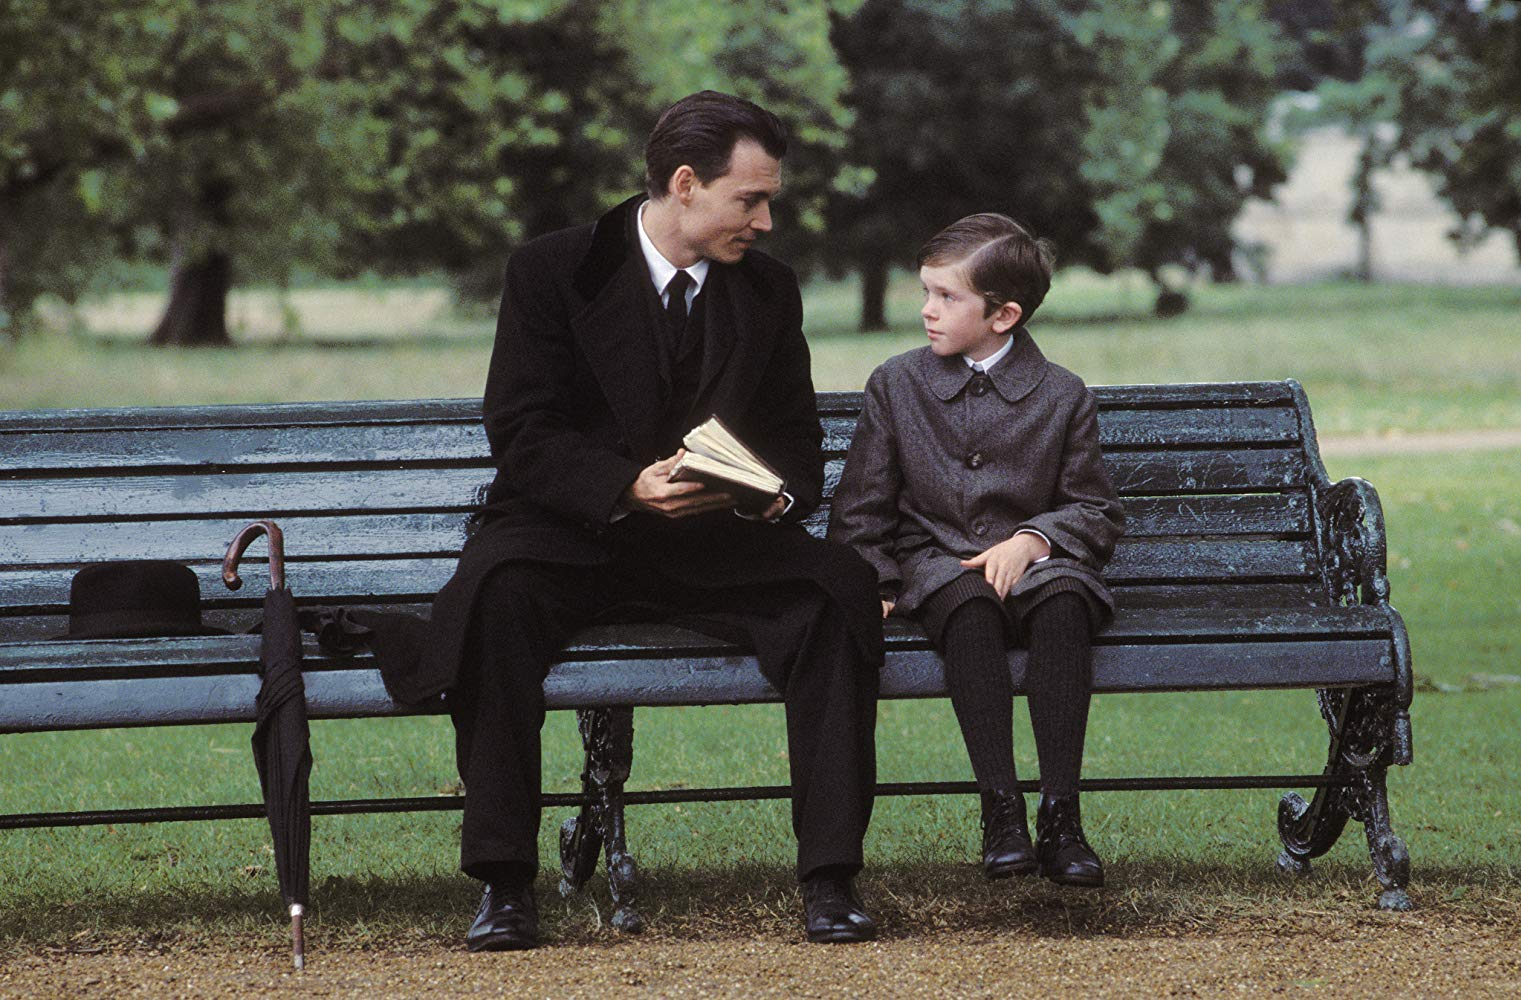 Johnny Depp as J.M. Barrie with Freddie Highmore as Peter Llewelyn Davies in Finding Neverland (2004)